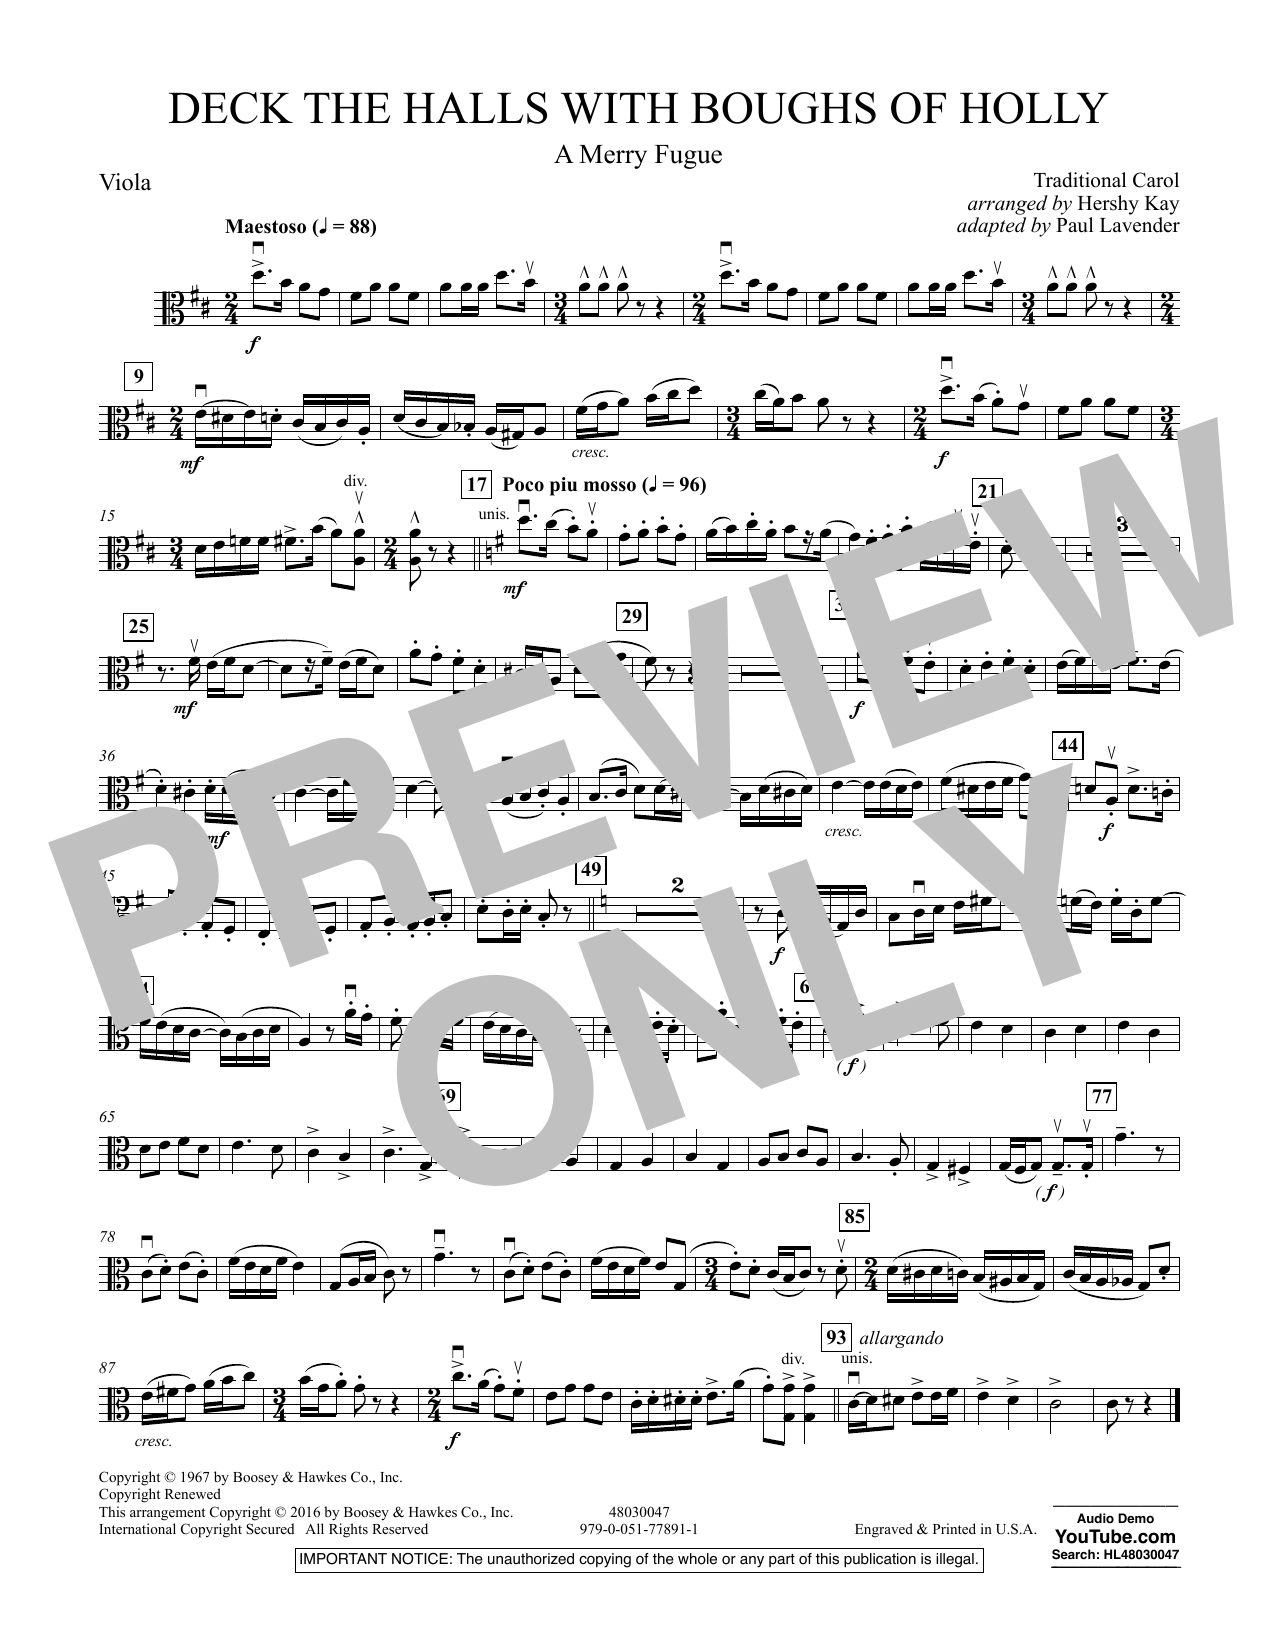 Deck the Halls with Boughs of Holly (A Merry Fugue) - Viola